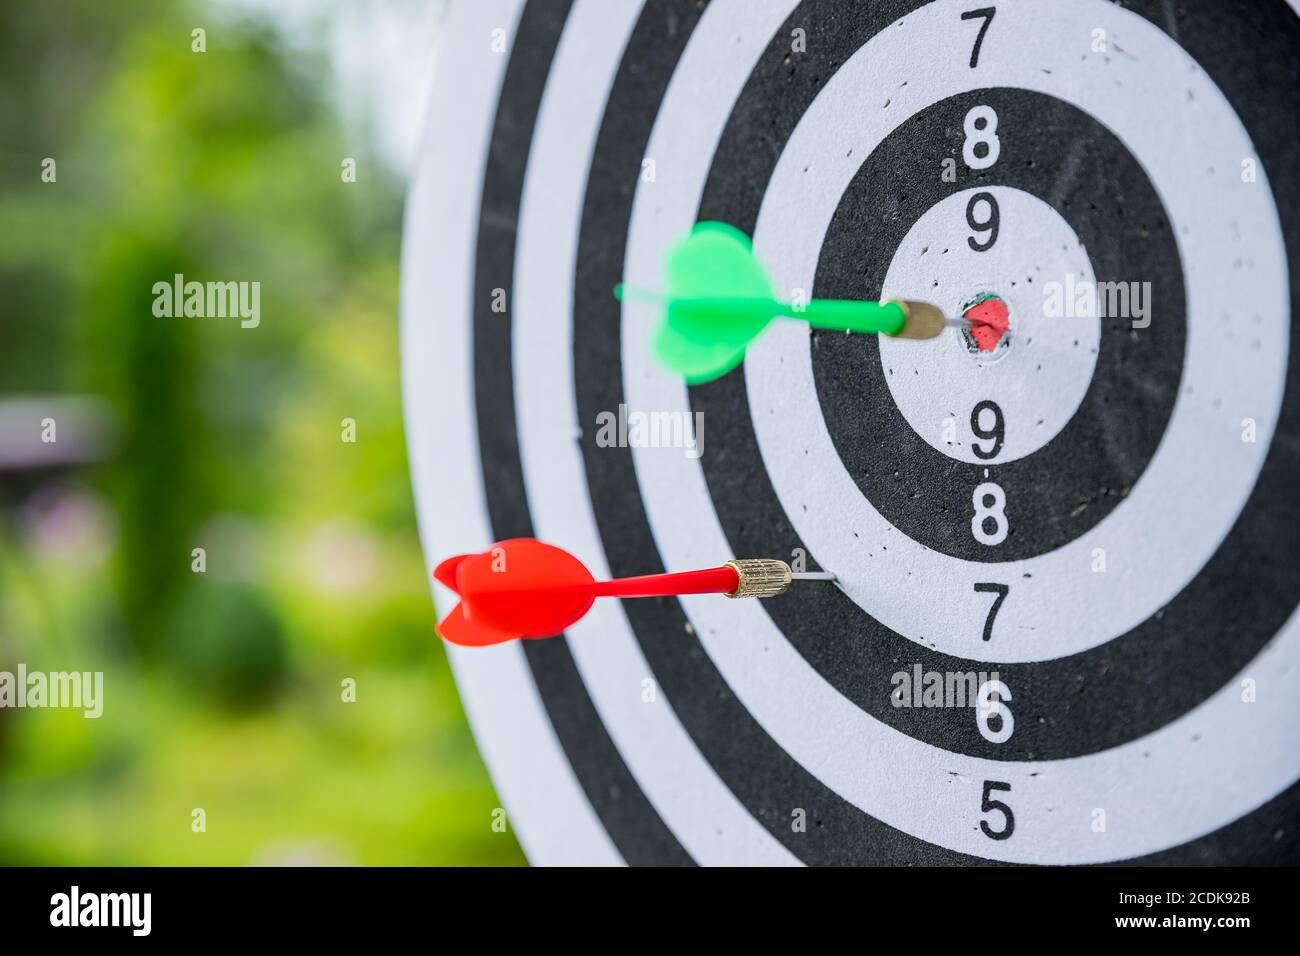 Dartboard with darts. side view of Dartboard with two darts.successful attempt. To attempt difficult task.Dart in bullseye of dartboard concept for Stock Photo